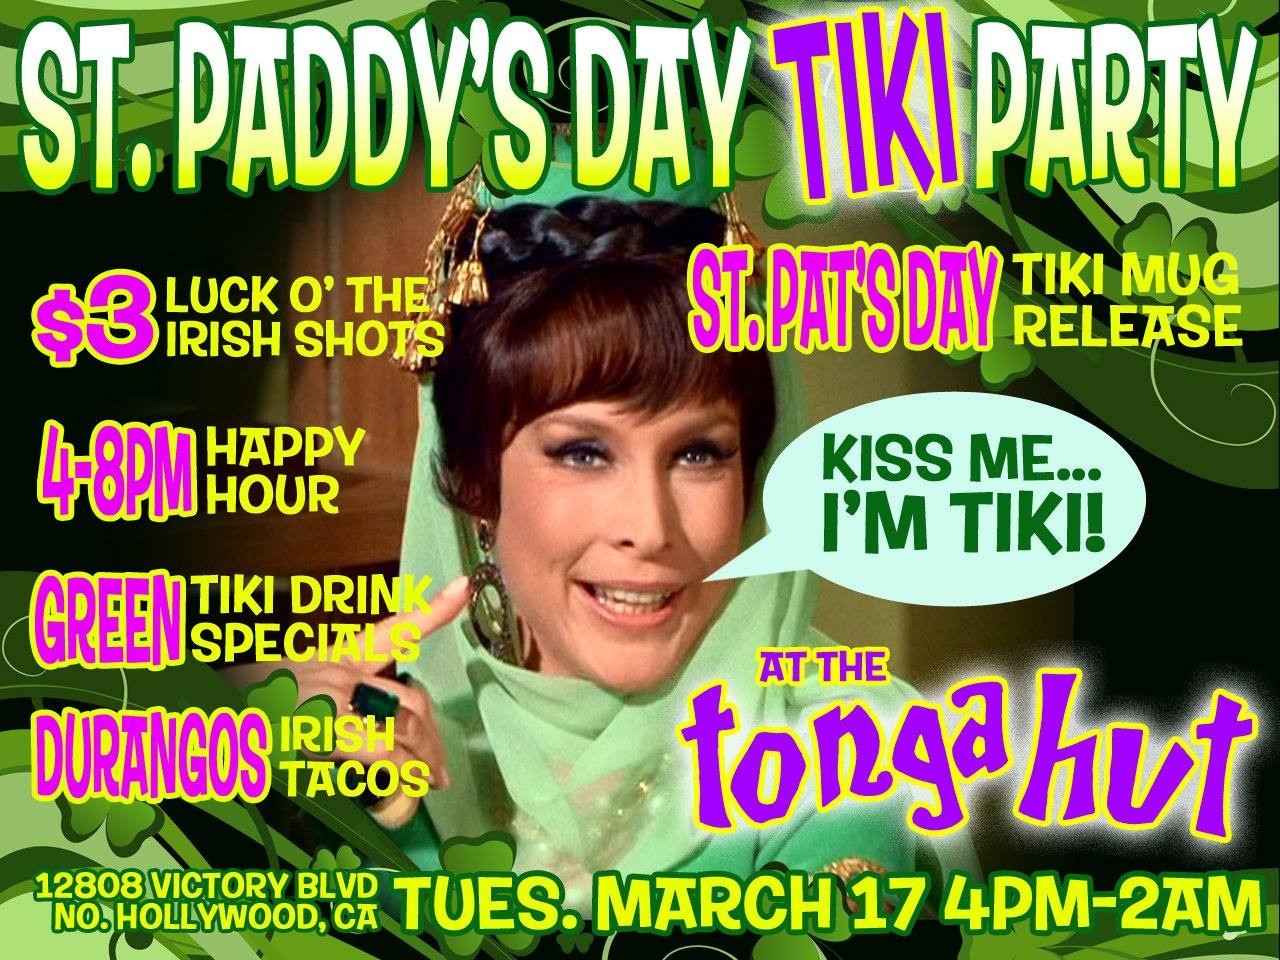 St. Paddy's Day Tiki Party at Tonga Hut